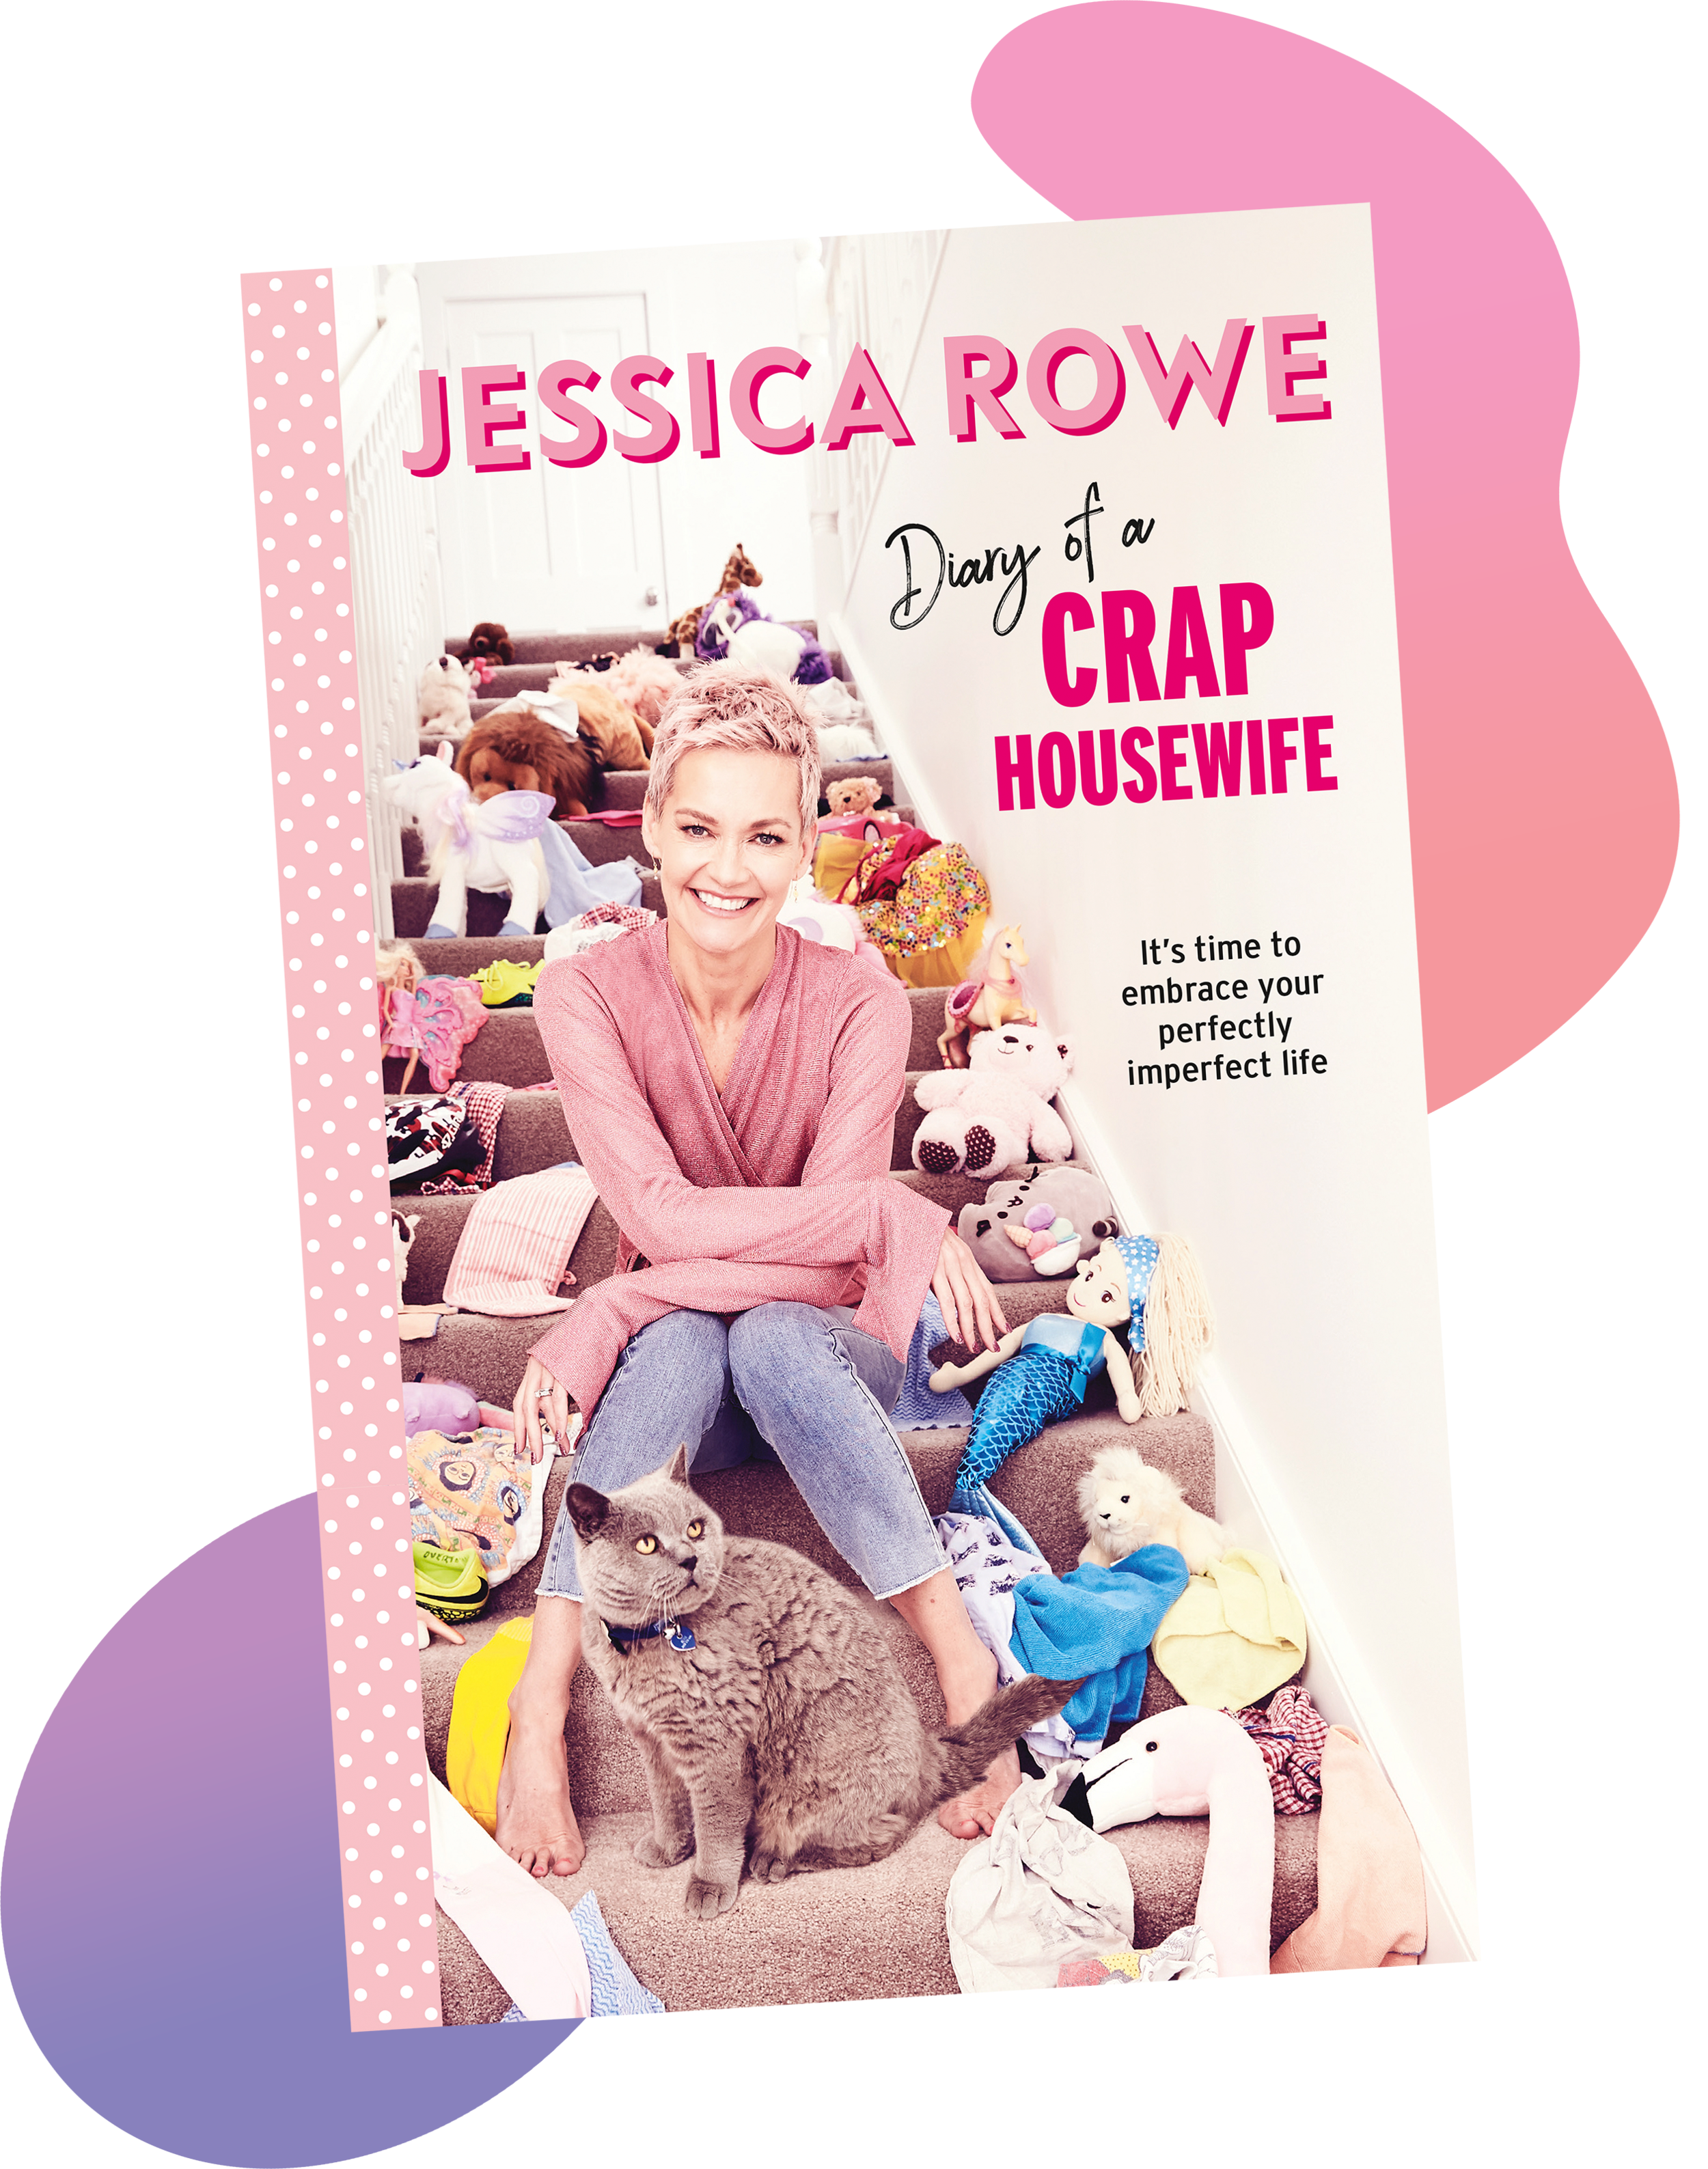 Diary of a Crap Housewife is available in-store and online from 1st April. -